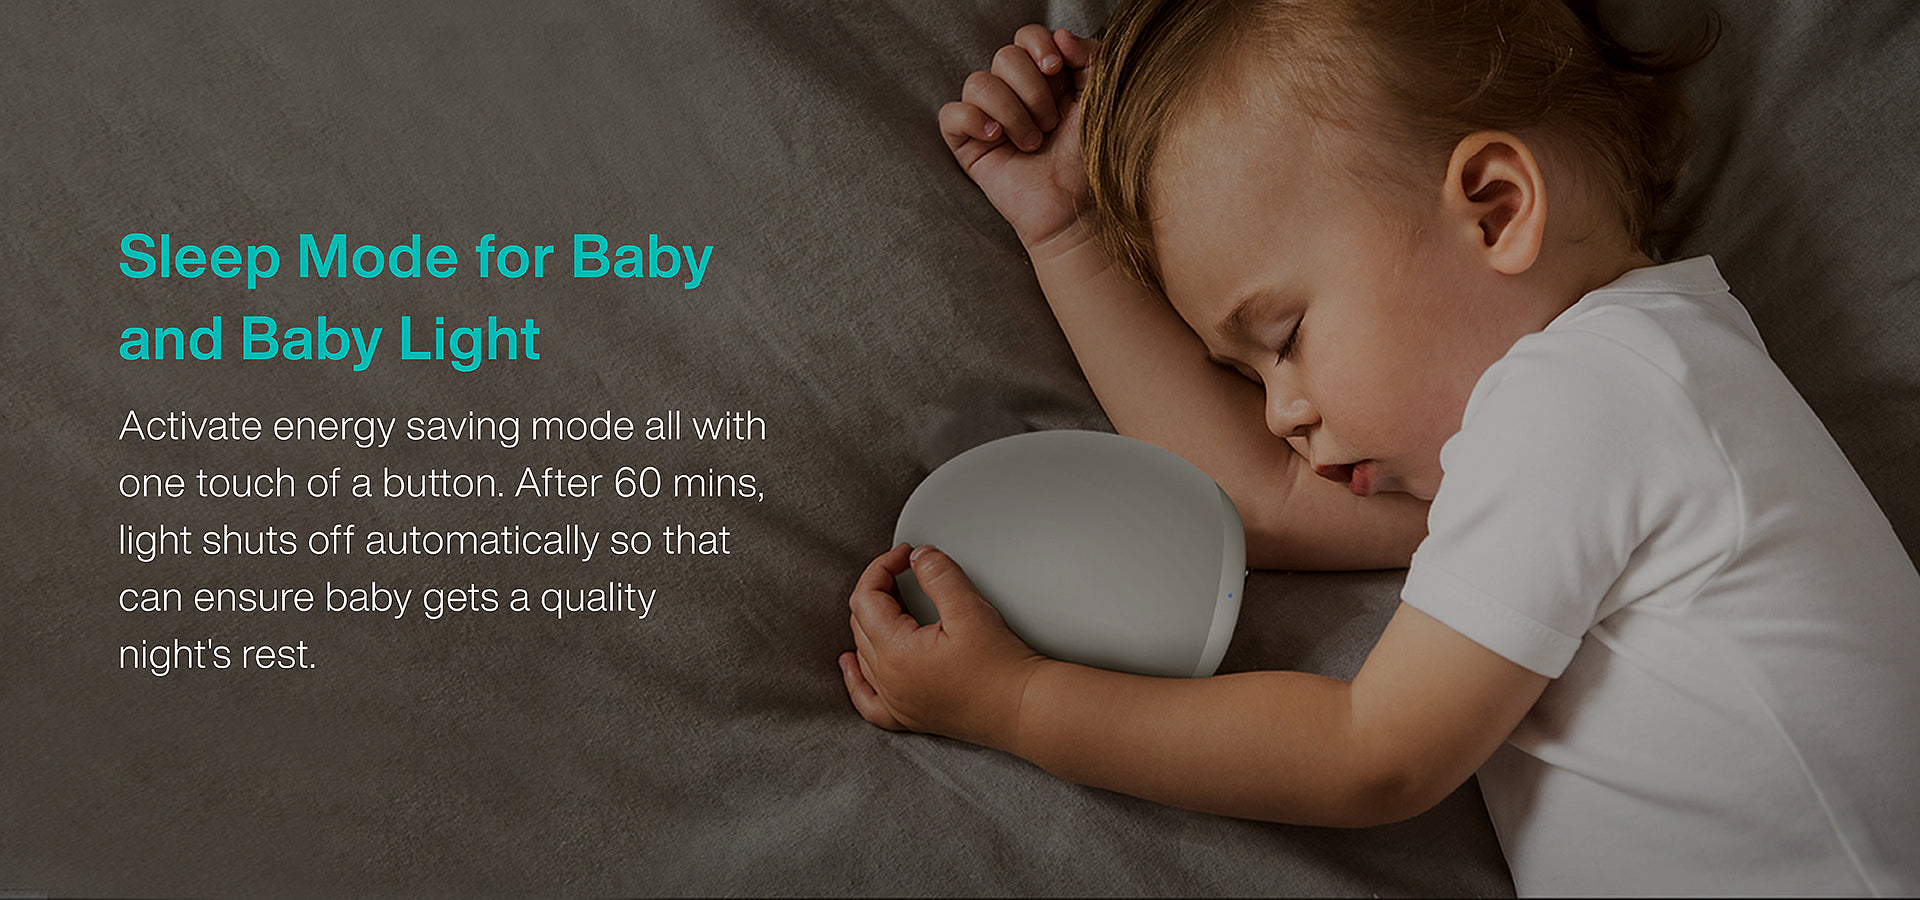 Sleep Mode for Baby and Baby Light